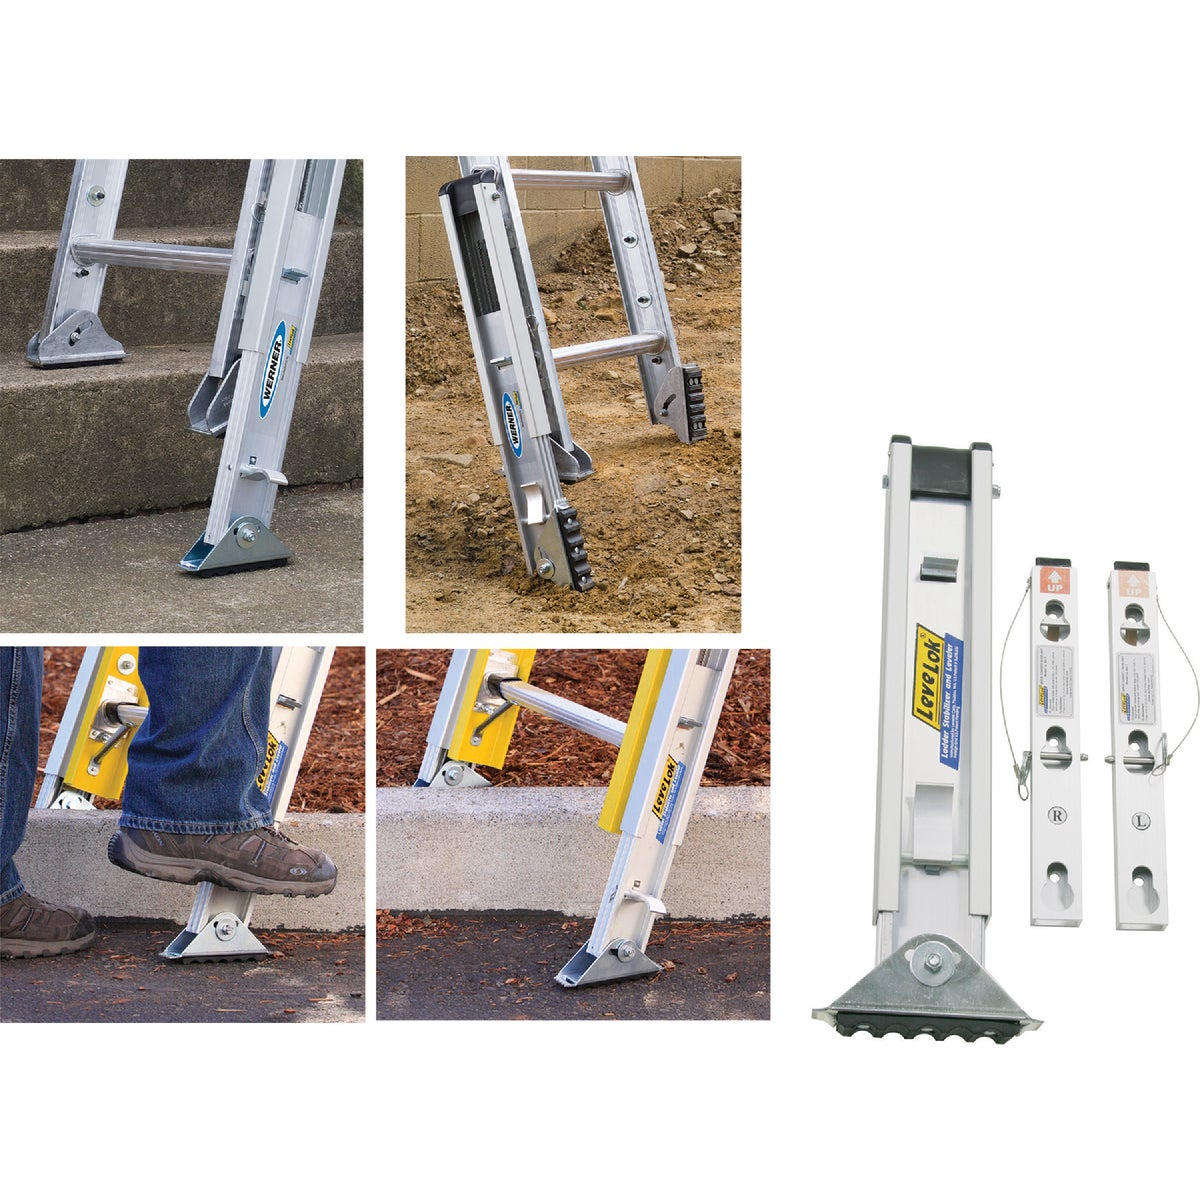 3PC LADDER LEVELER KIT - PK70-1 by Werner Ladder